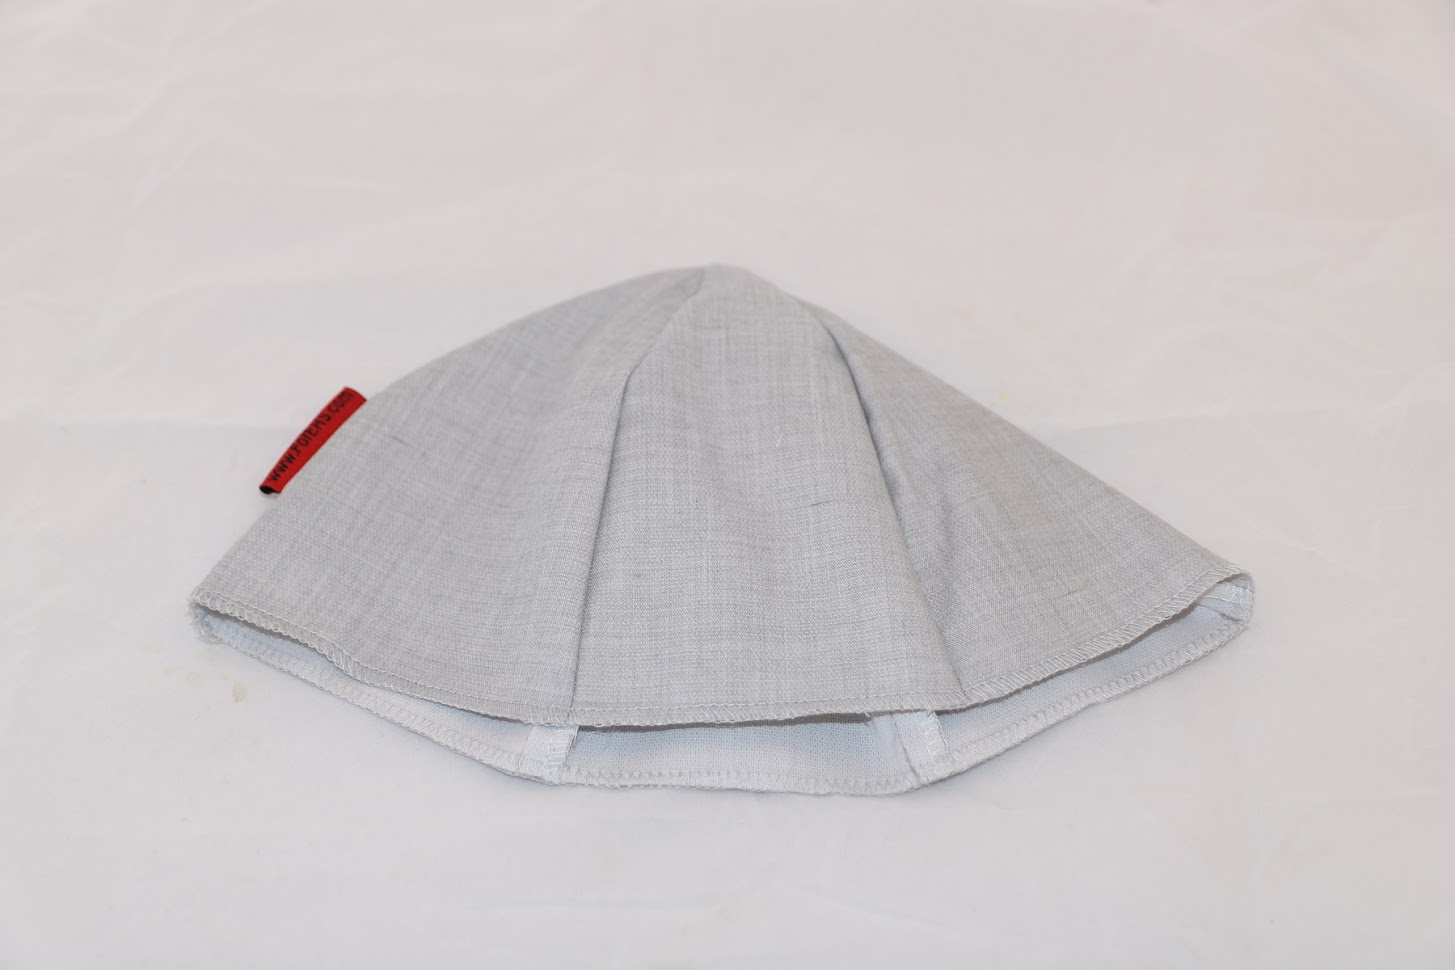 RF PROTECTION LINING FOR HATS - BC190